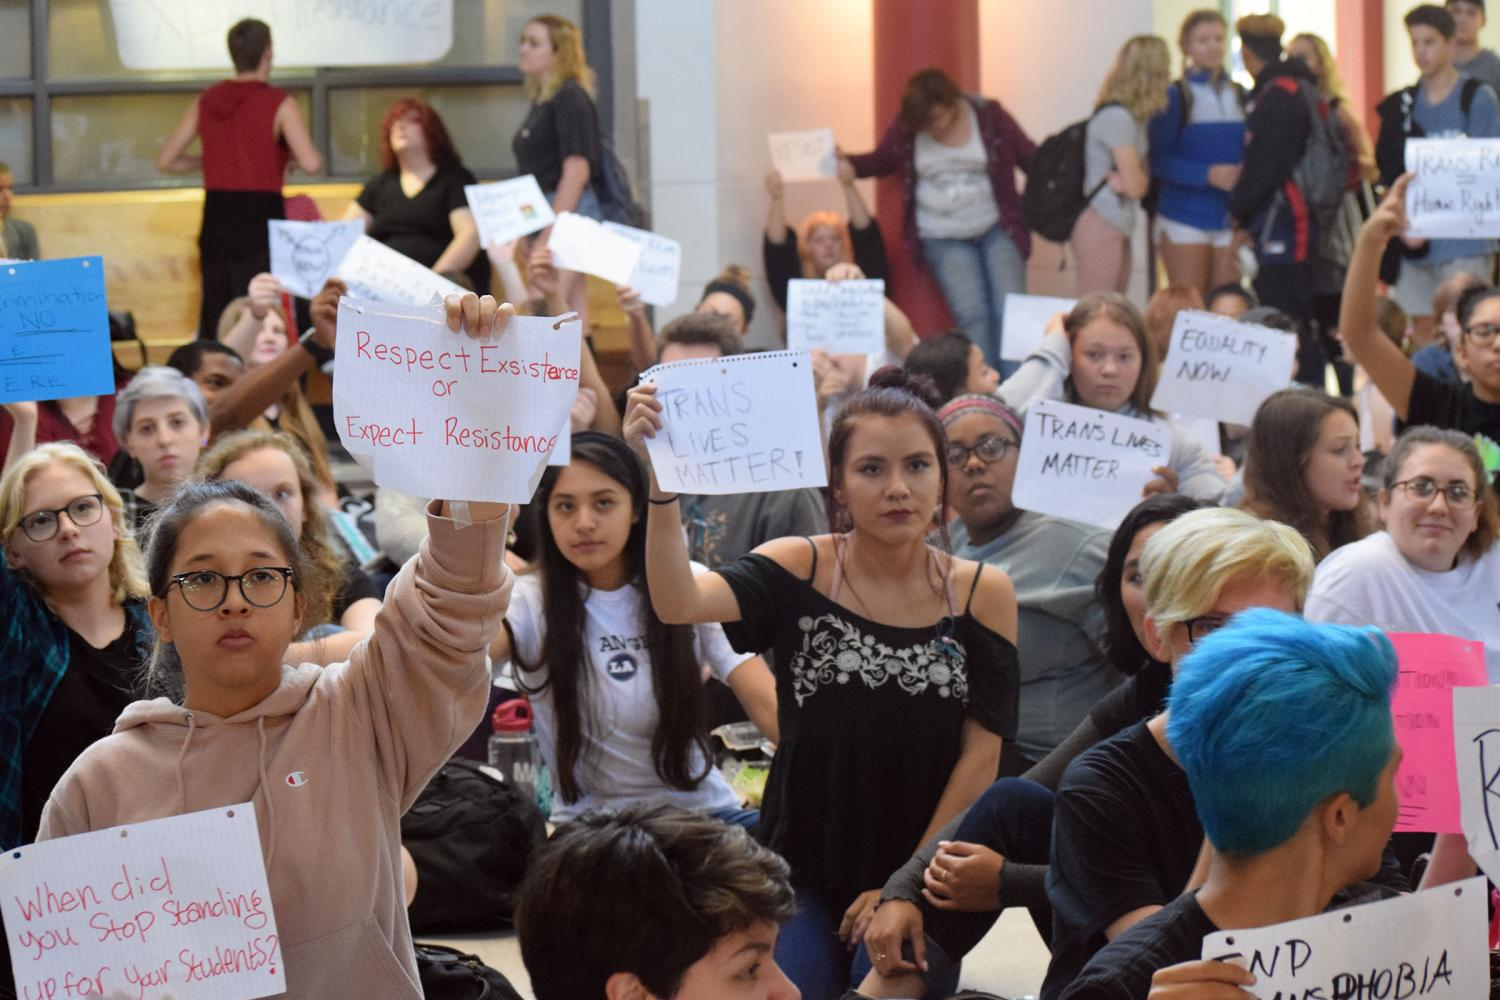 Students filled the rotunda Monday for a sit-in to support transgender students.